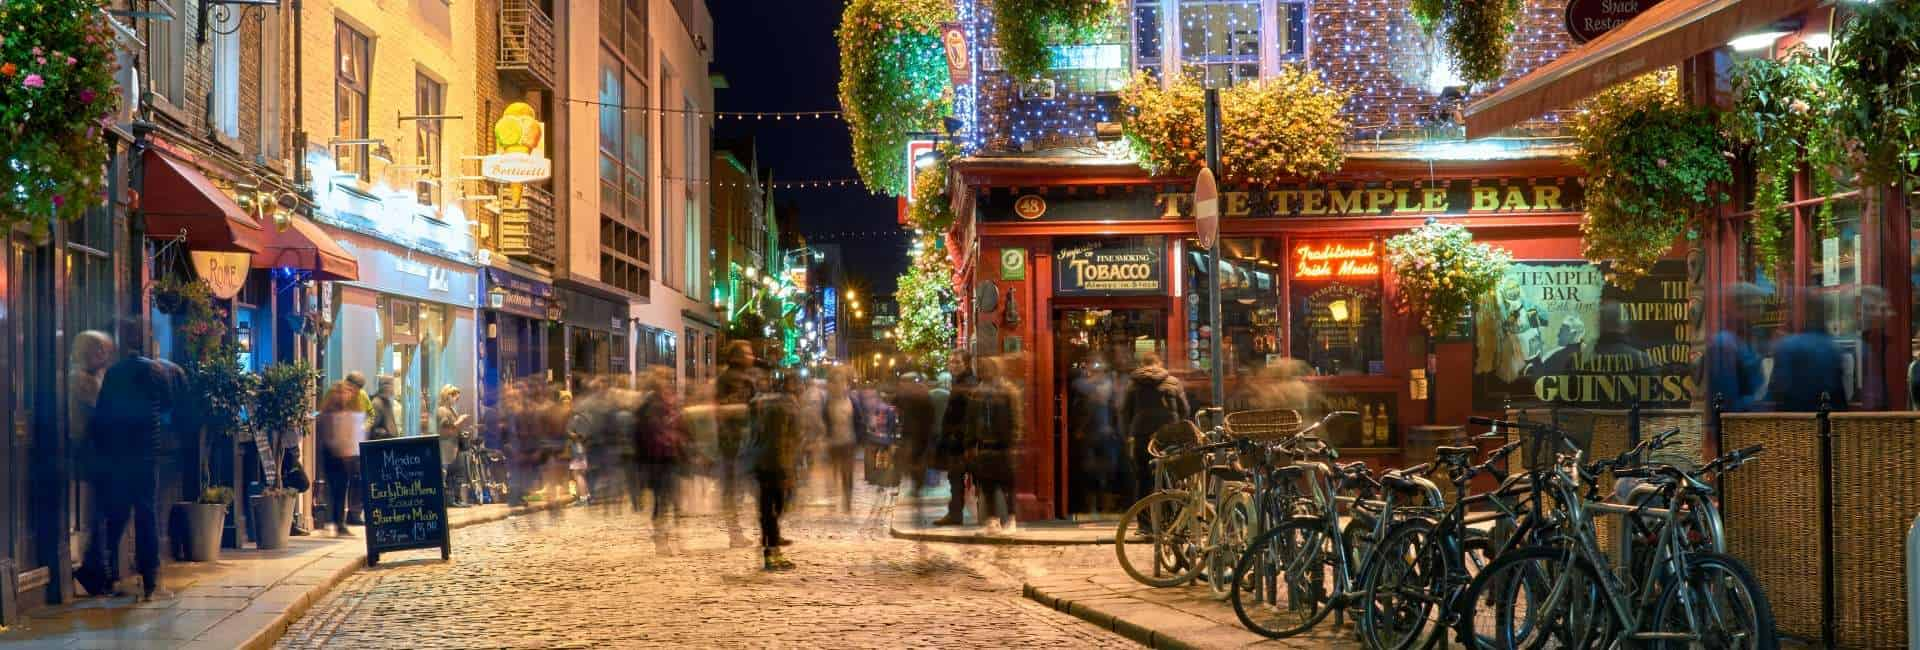 shutterstock_426857392-large dublin night cropped